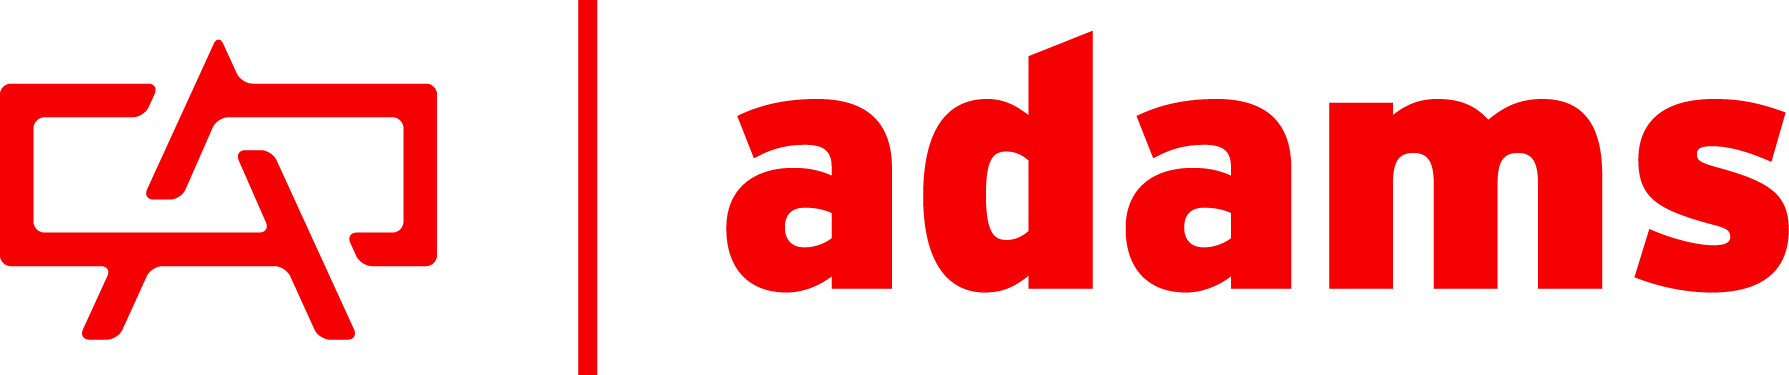 Adams Outdoor Advertising Logo